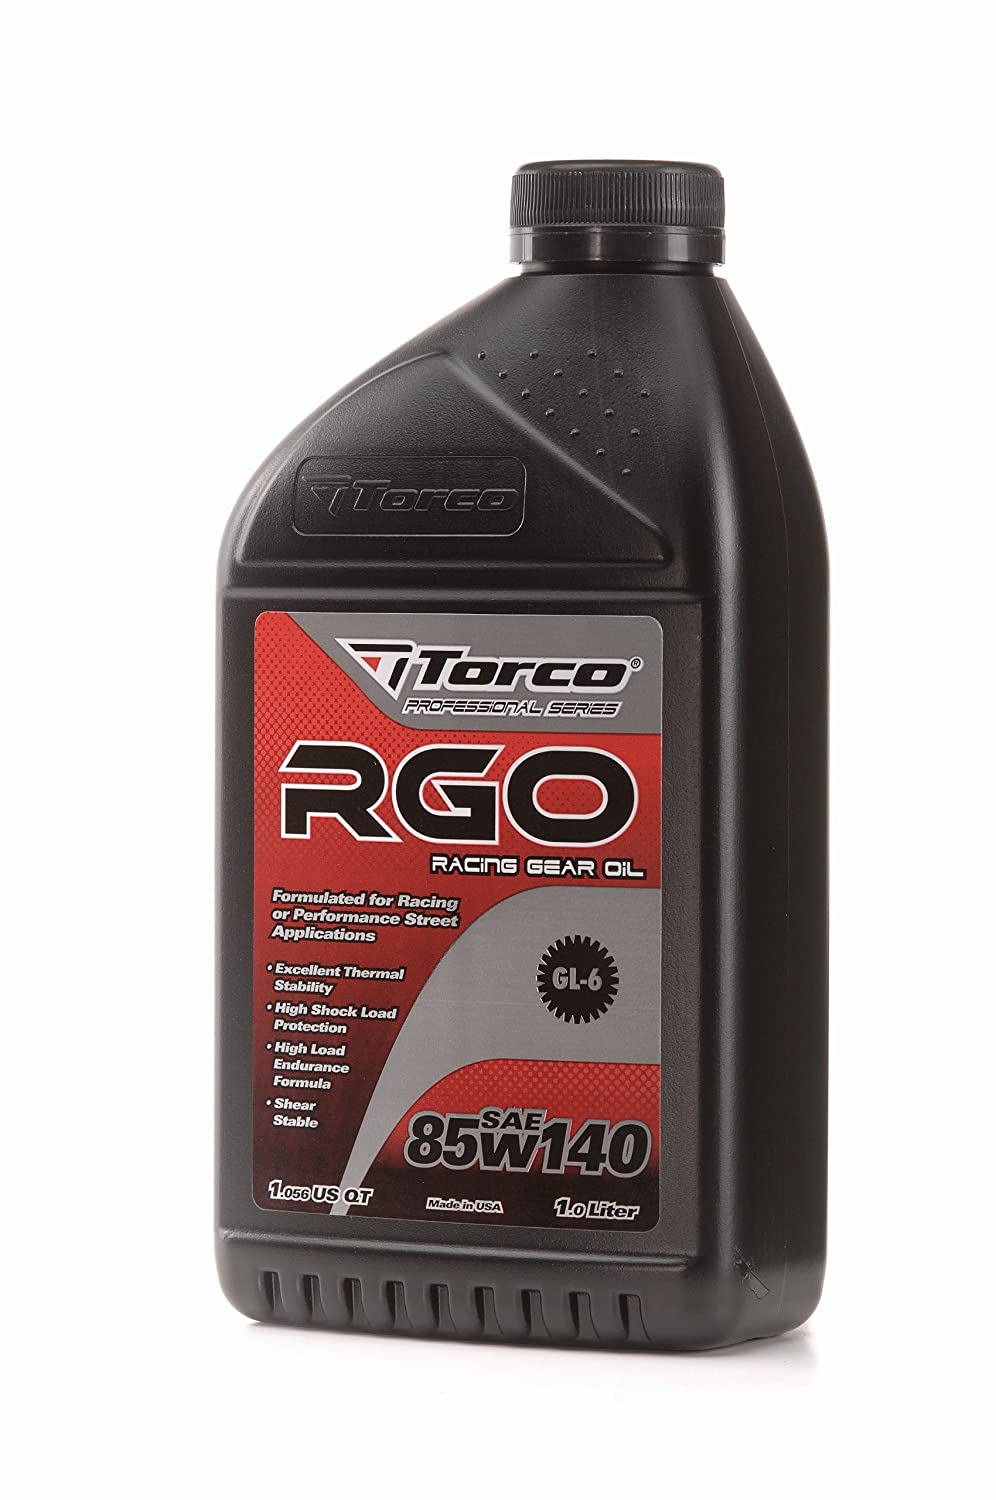 Amazon.com: Torco A248514C RGO 85w140 Racing Gear Oil Bottle - 1 Liter,  (Case of 12): Automotive